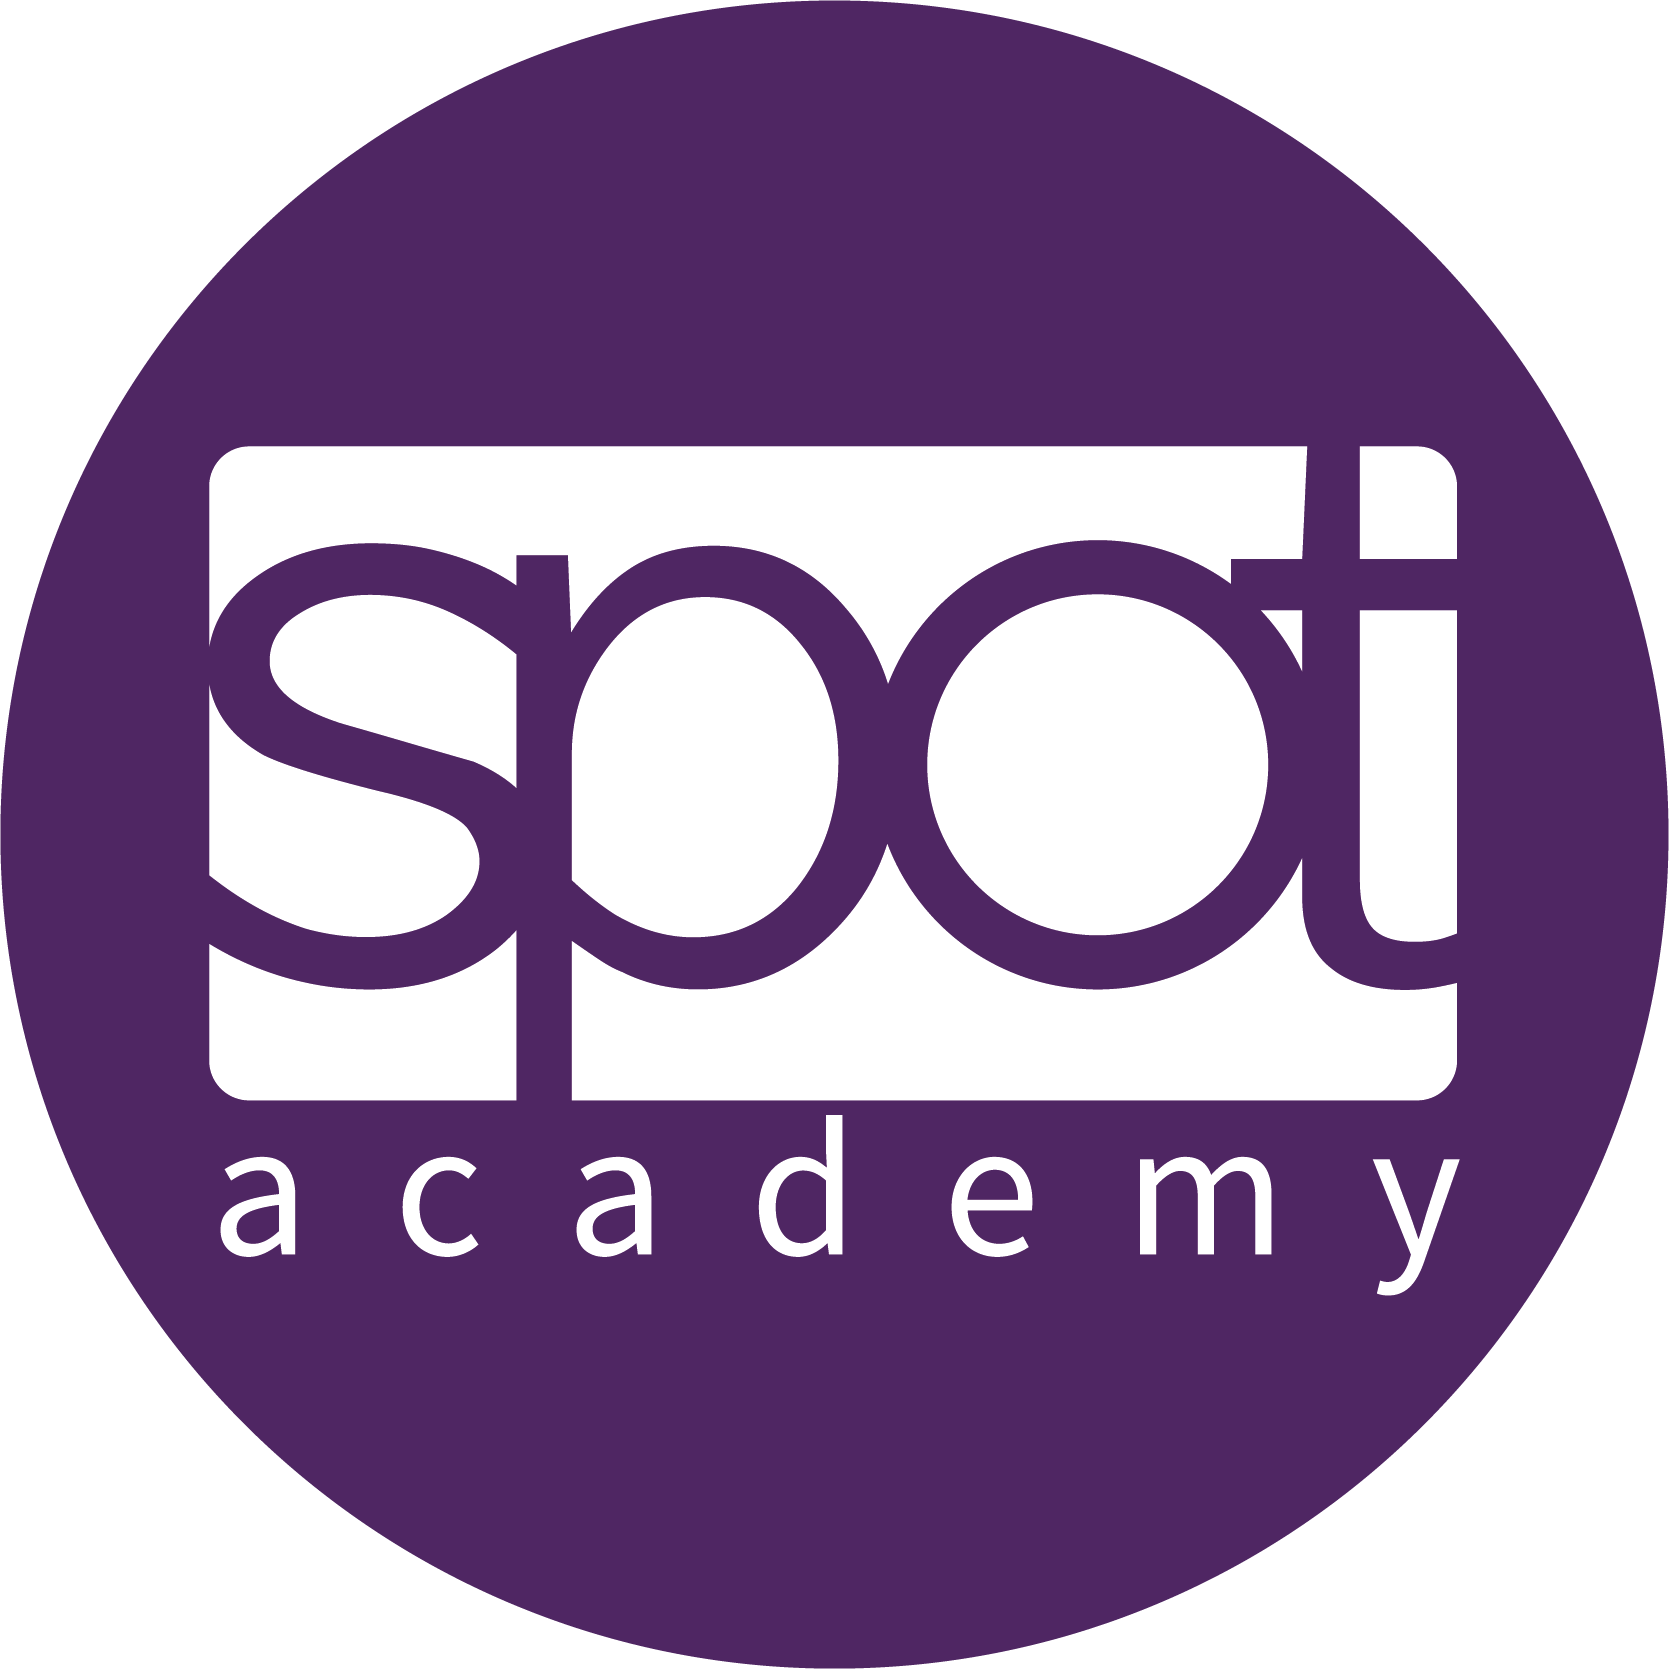 spot.academy Learning